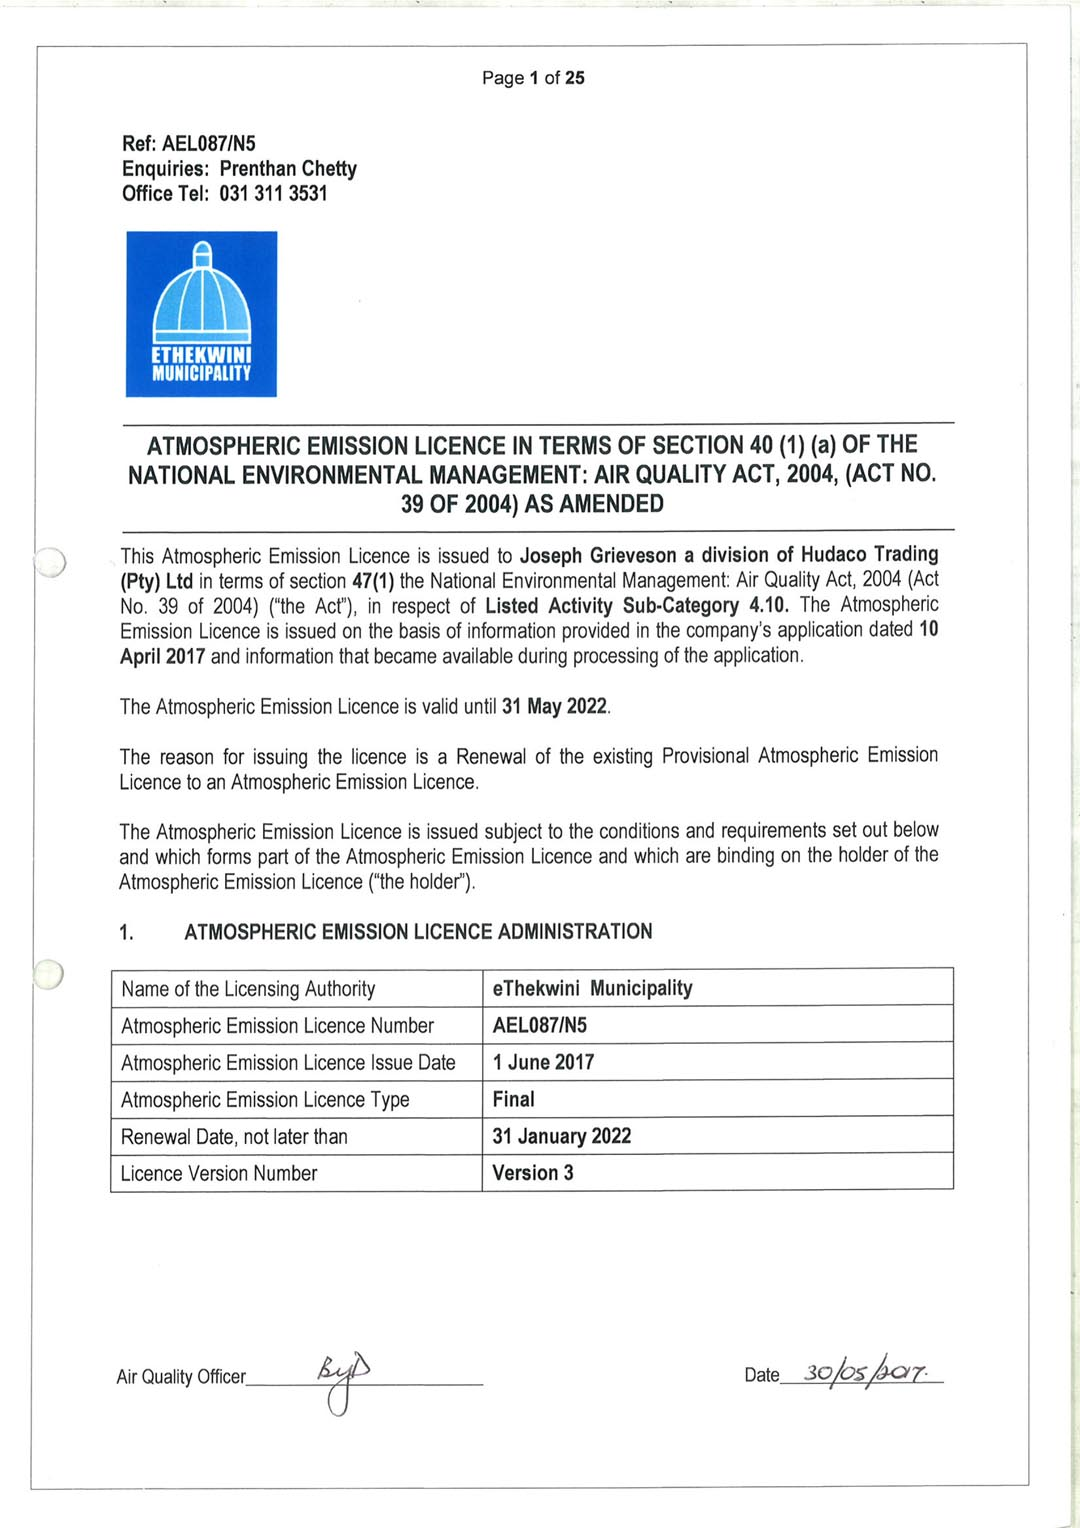 Joseph Grieveson Air Emissions Licence